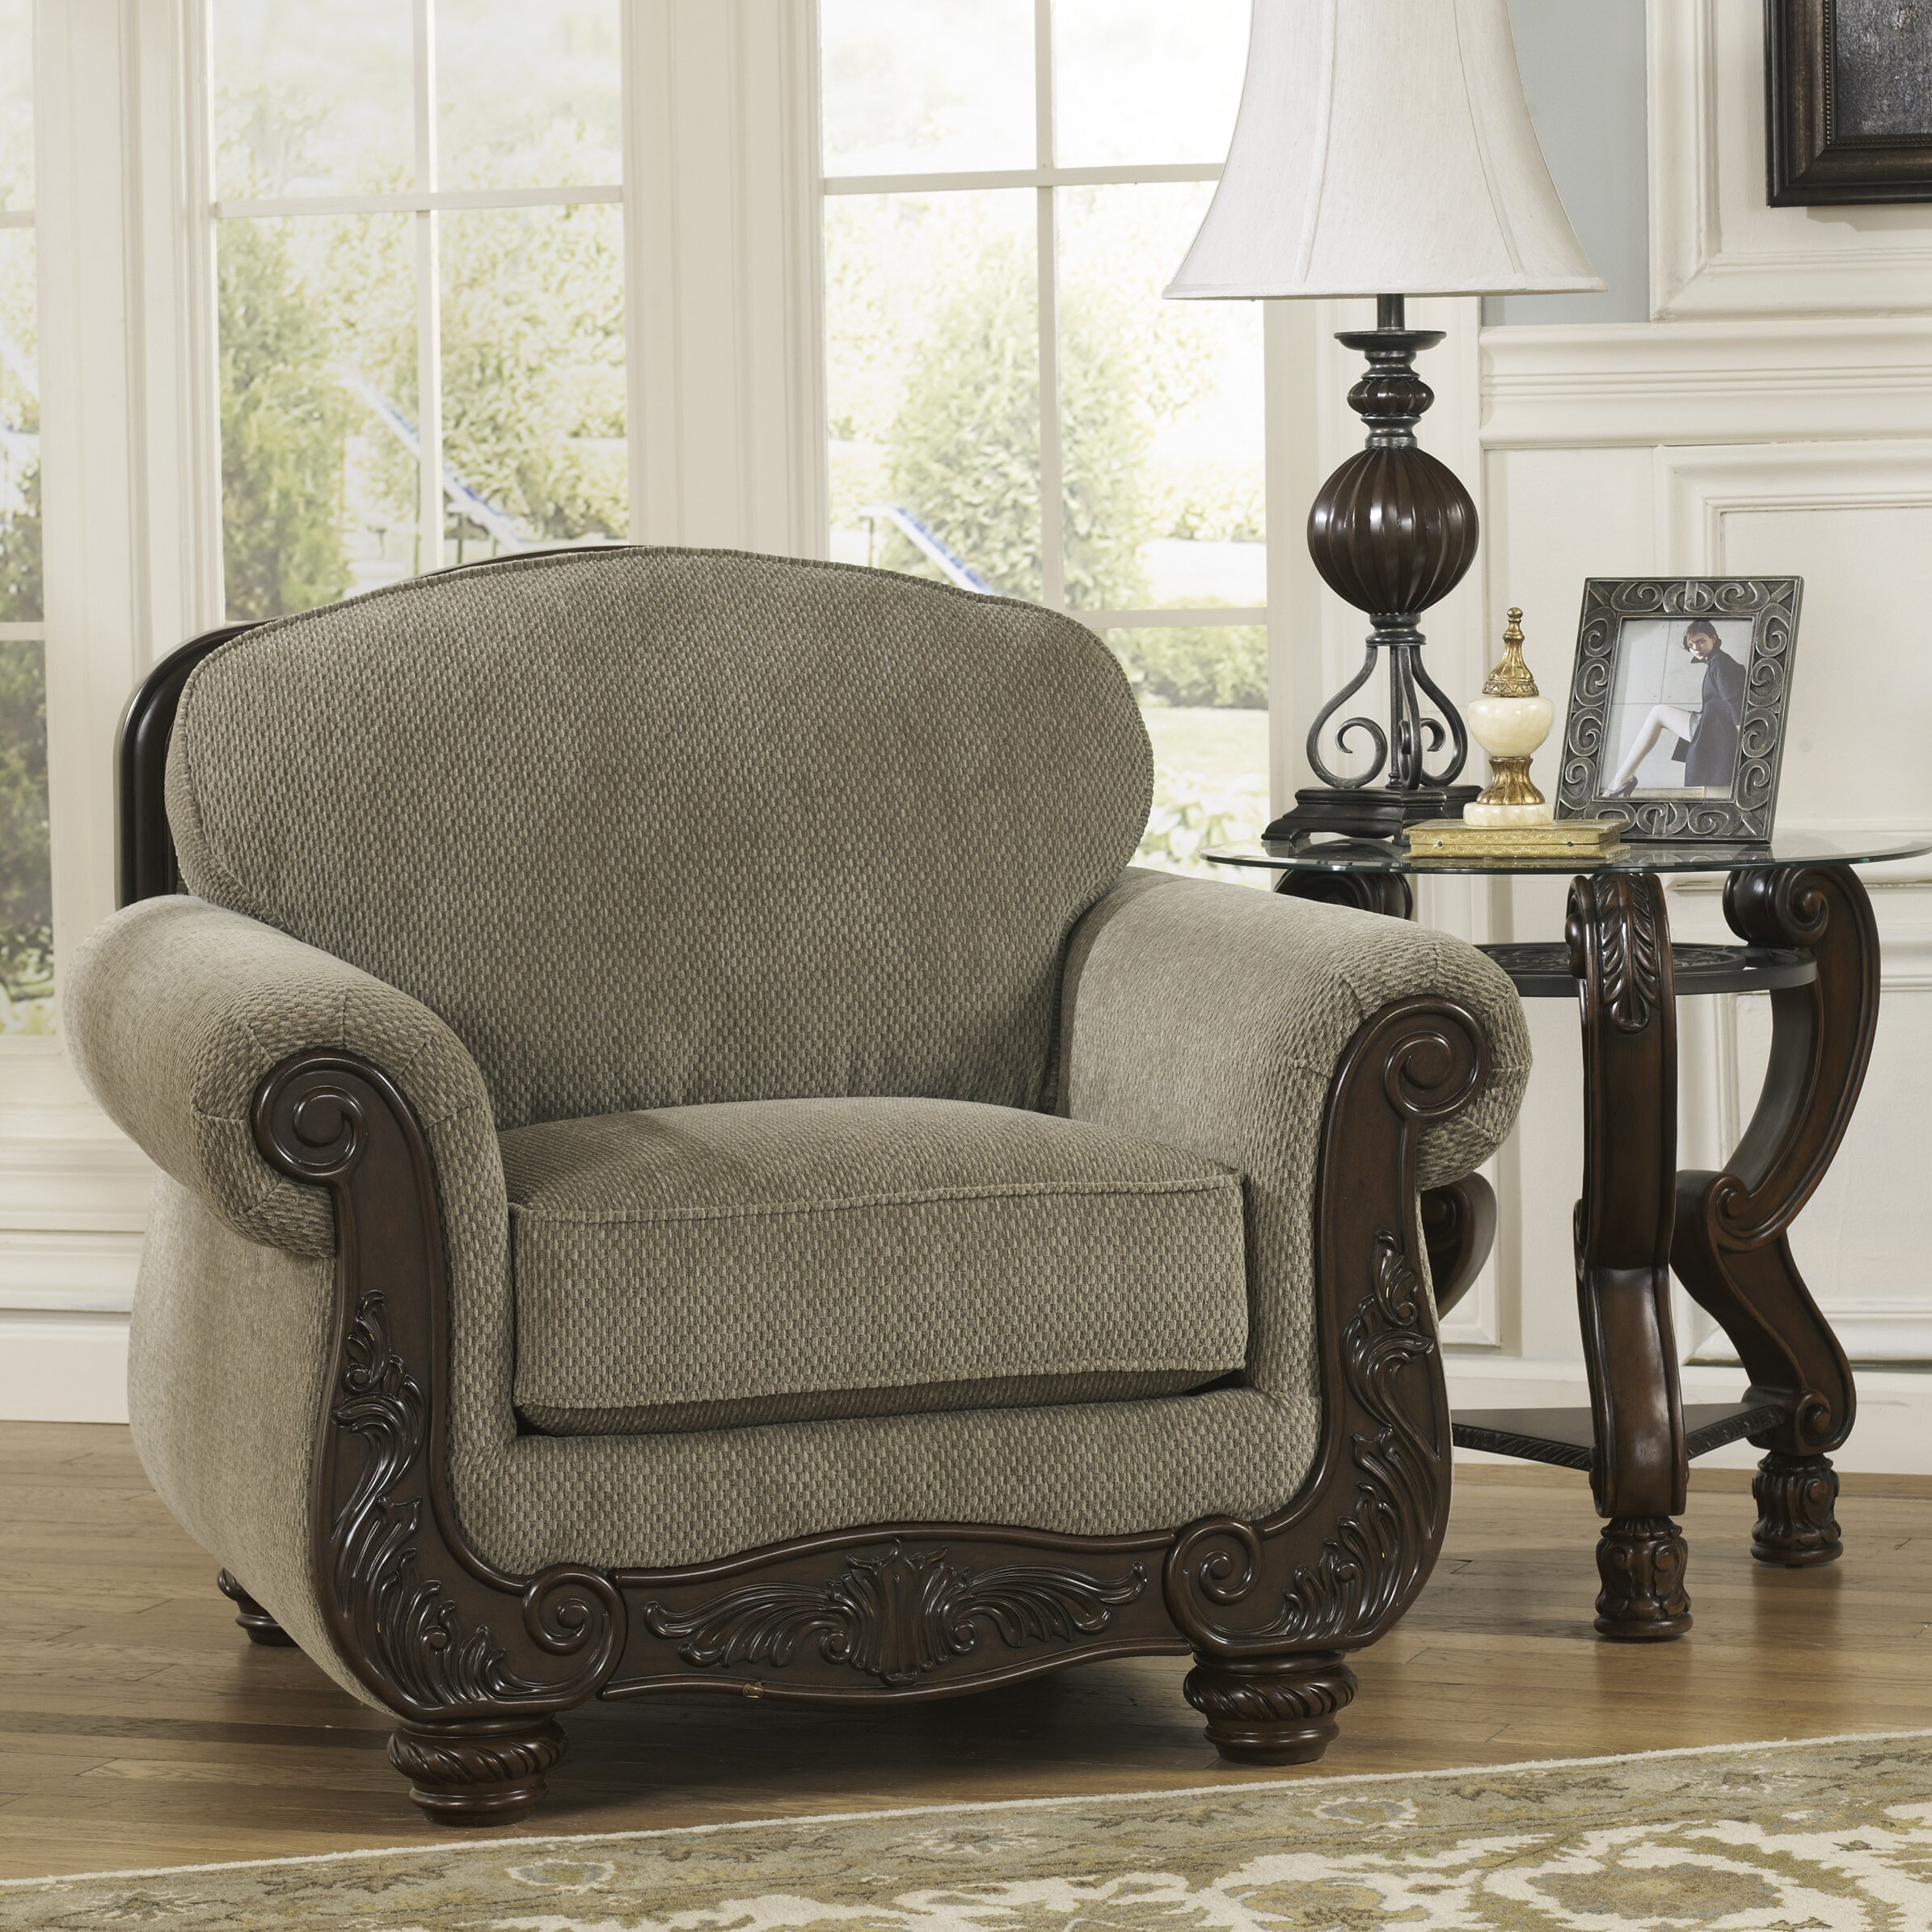 Astoria Grand Rothesay Living Room Collection Reviews Wayfair Part 29